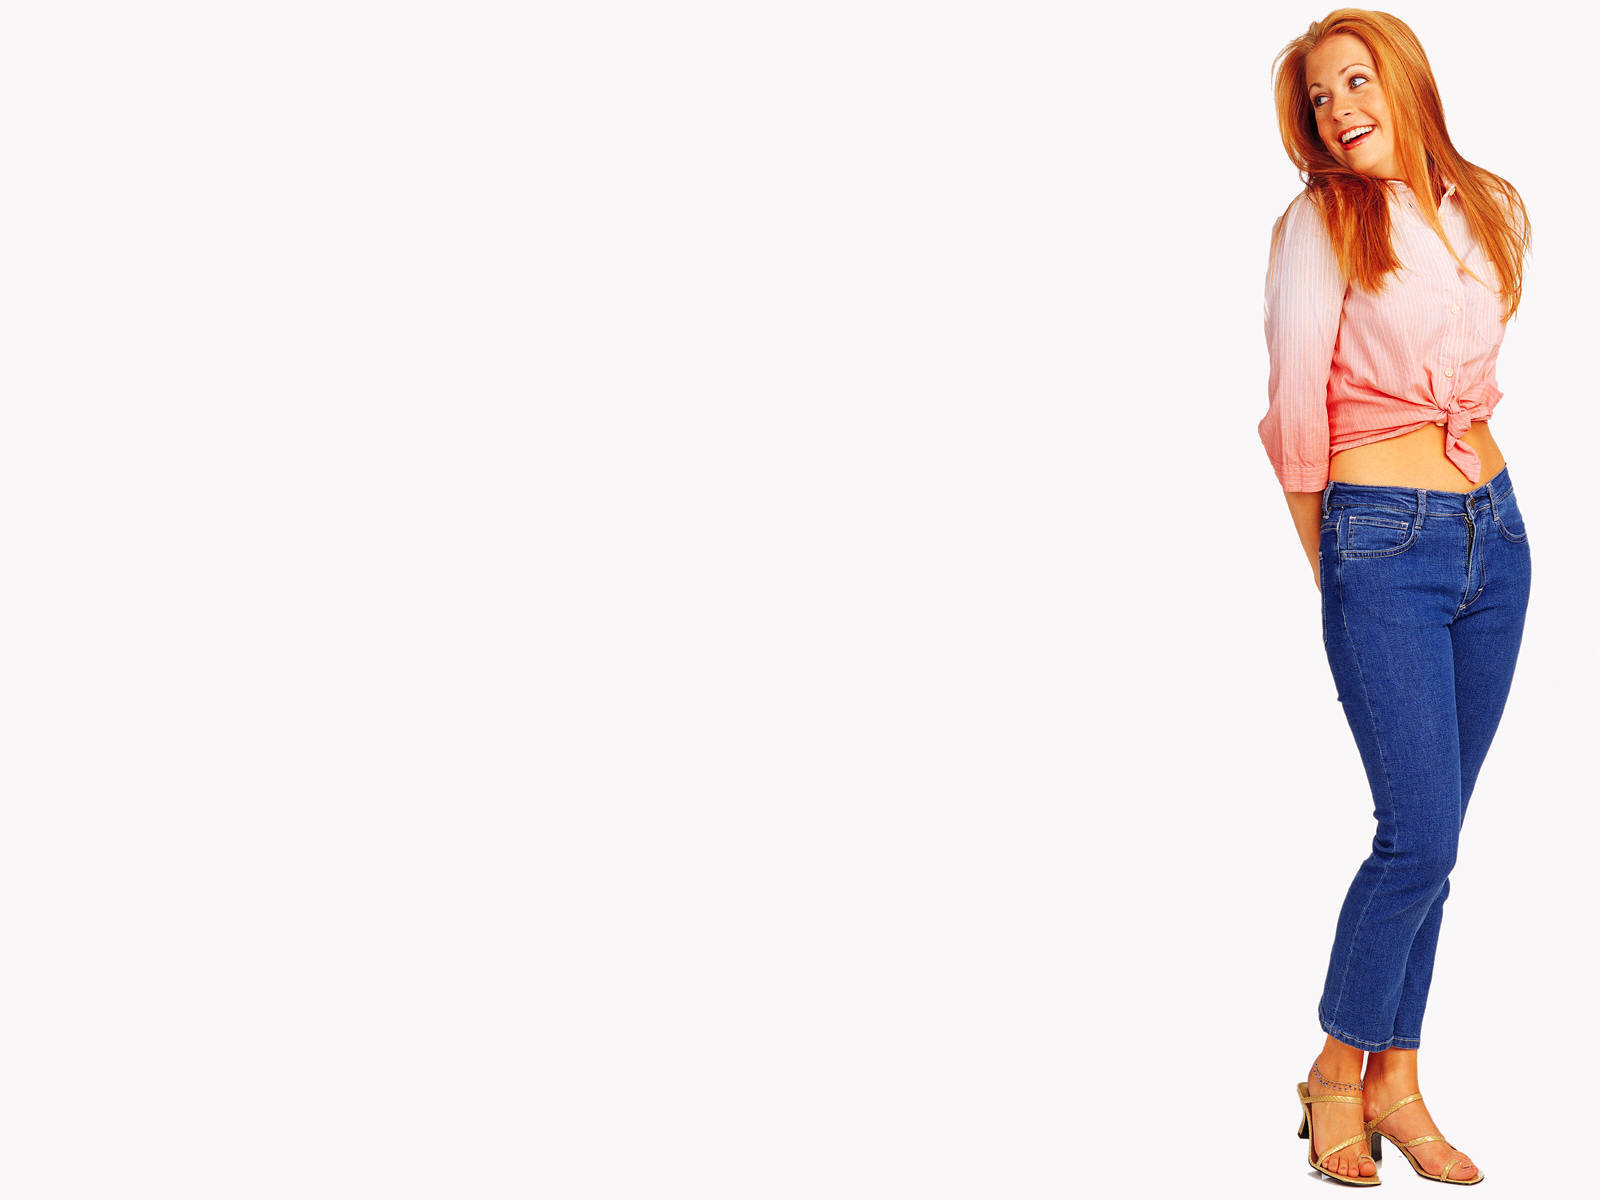 jeans Melissa joan hart HD Wallpaper